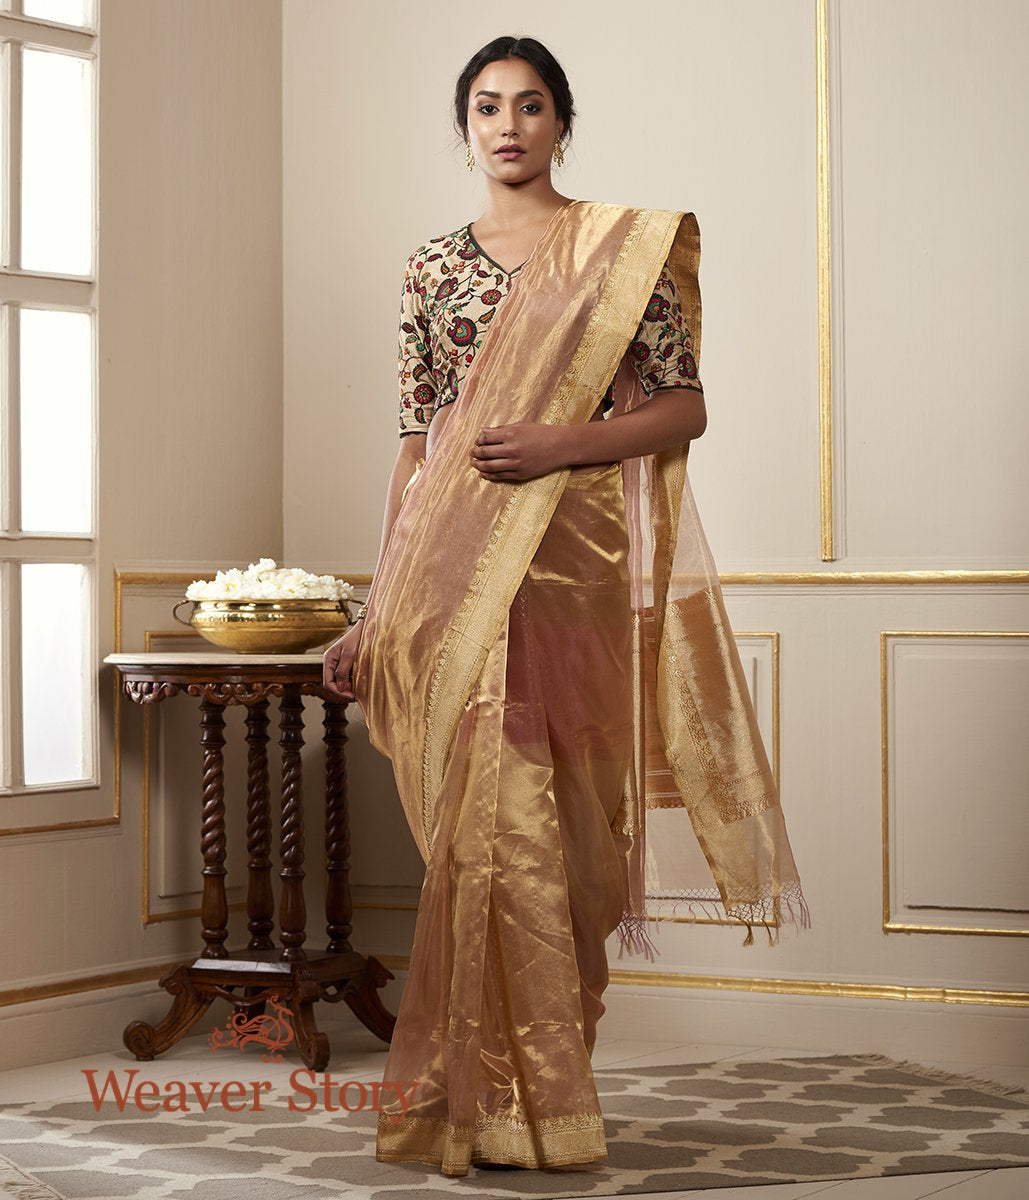 Handwoven Pink and Gold Pure Tissue Rangkat Saree